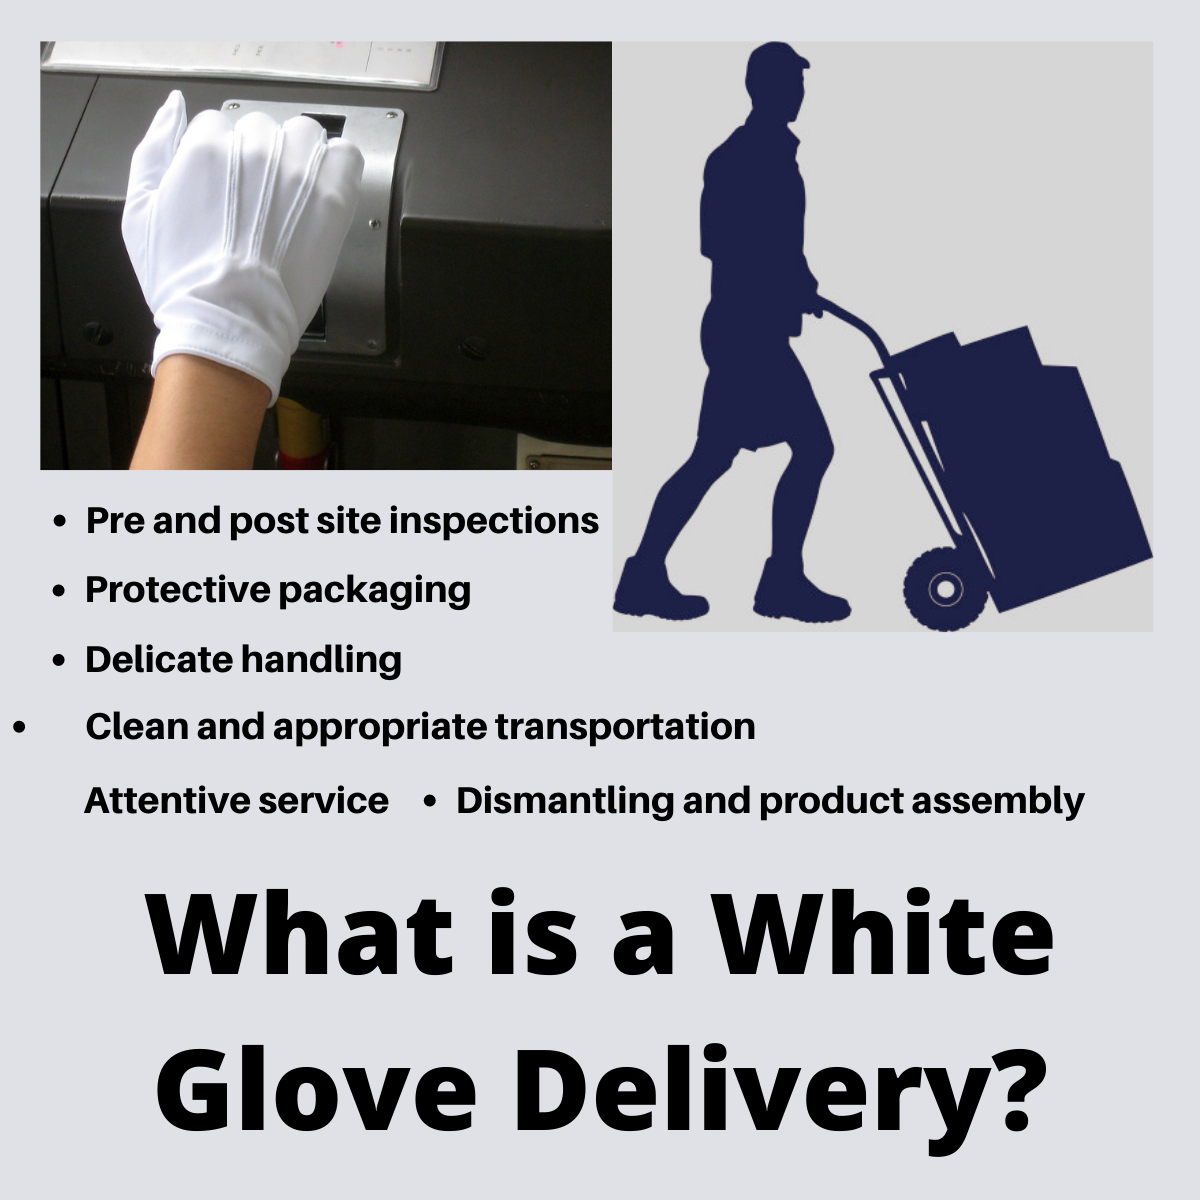 What is a White Glove Delivery?